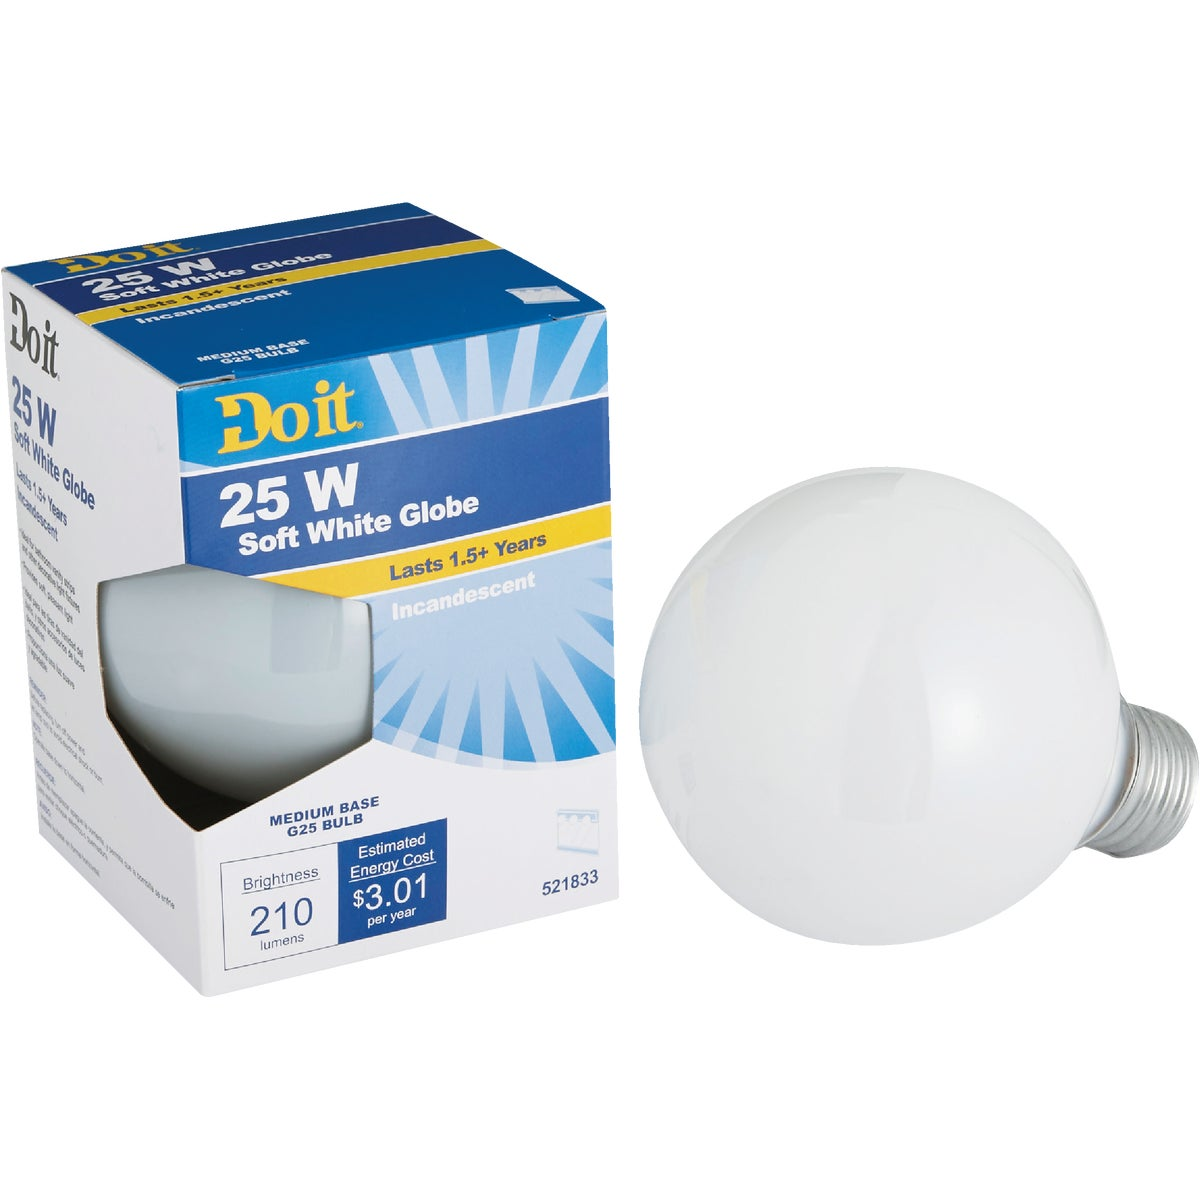 25W WHT 3-1/8GLOBE BULB - 17855 by G E Private Label